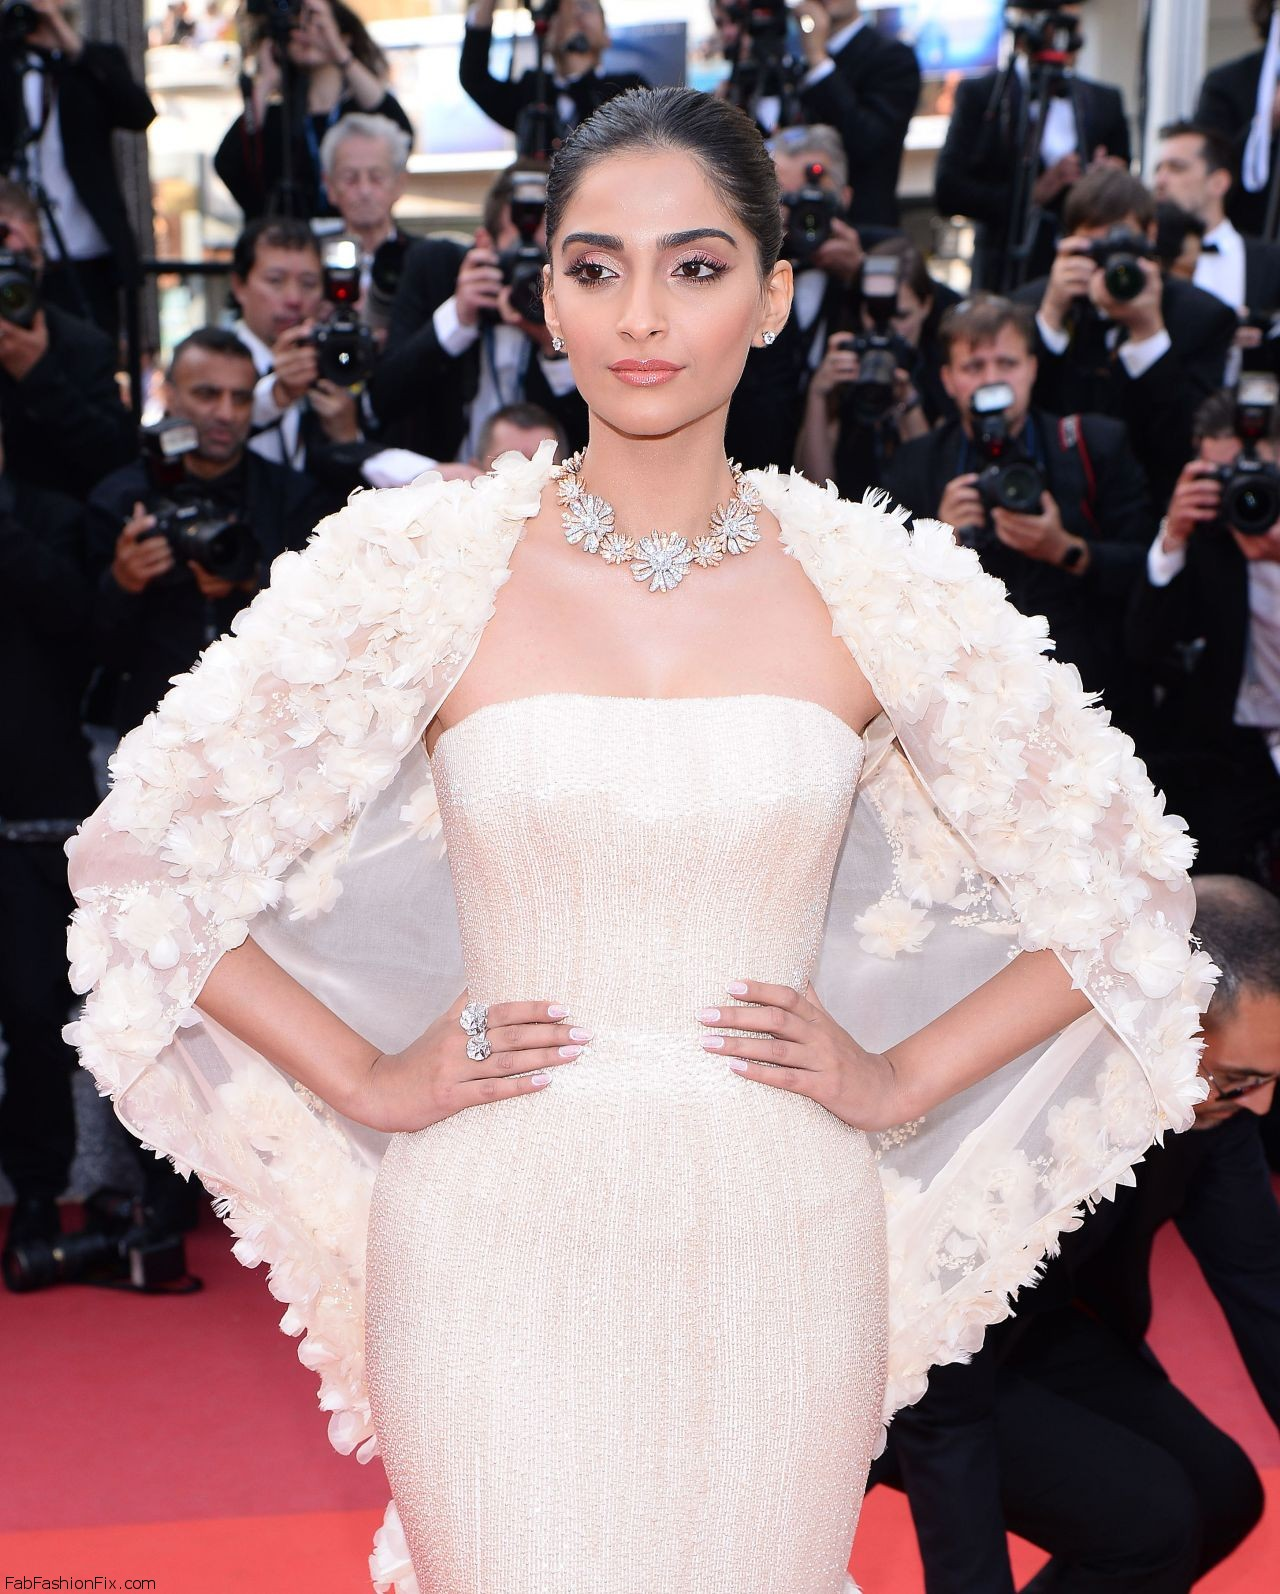 sonam-kapoor-the-loving-premiere-at-69th-cannes-film-festival-5-16-2016-1